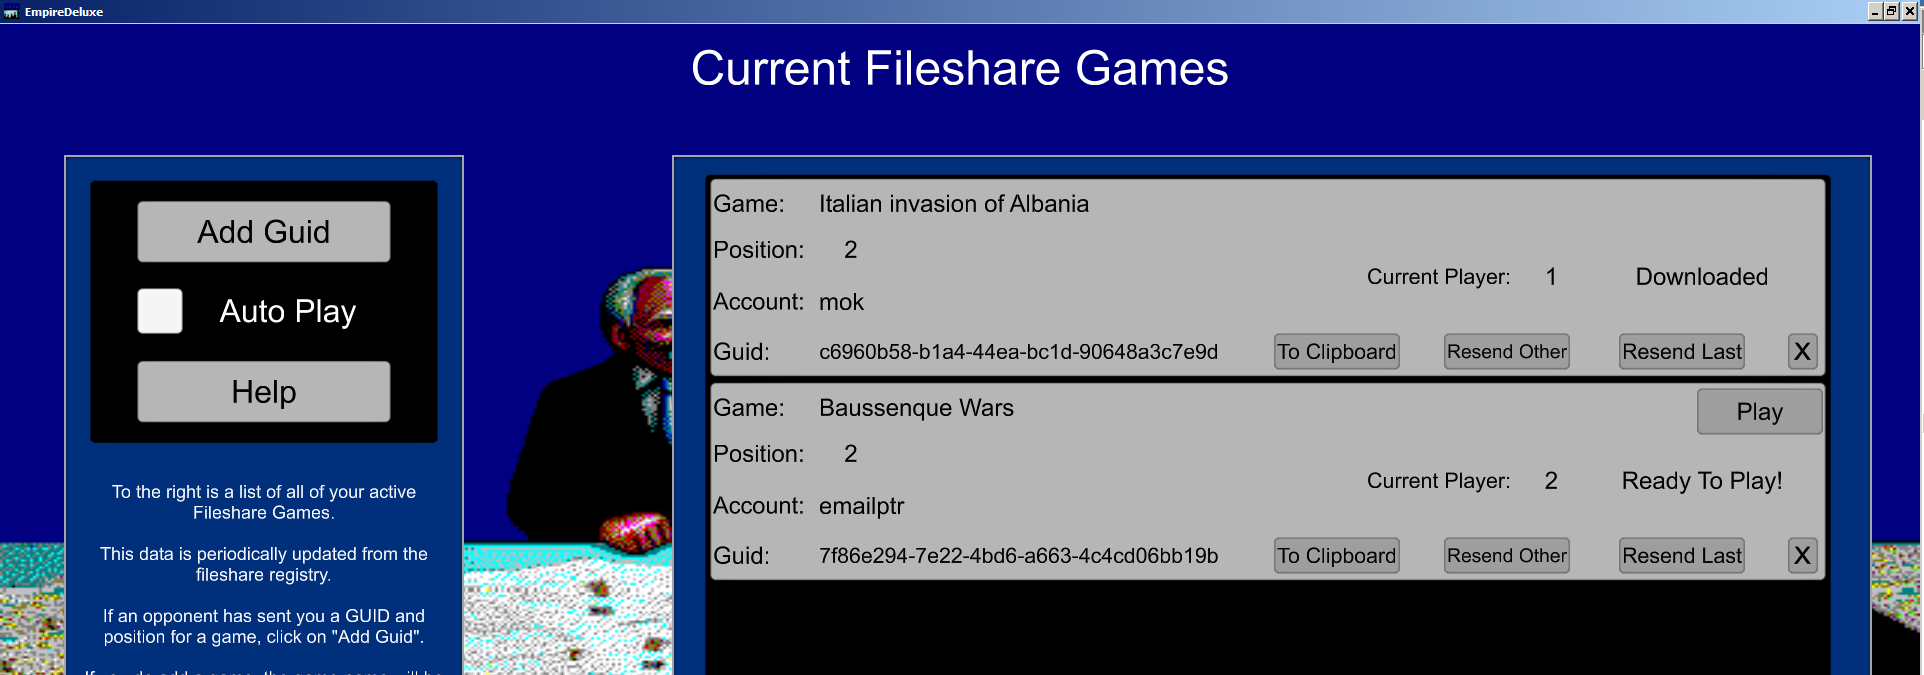 Working On A New Way To Multi-Play - Empire Deluxe Combined Edition